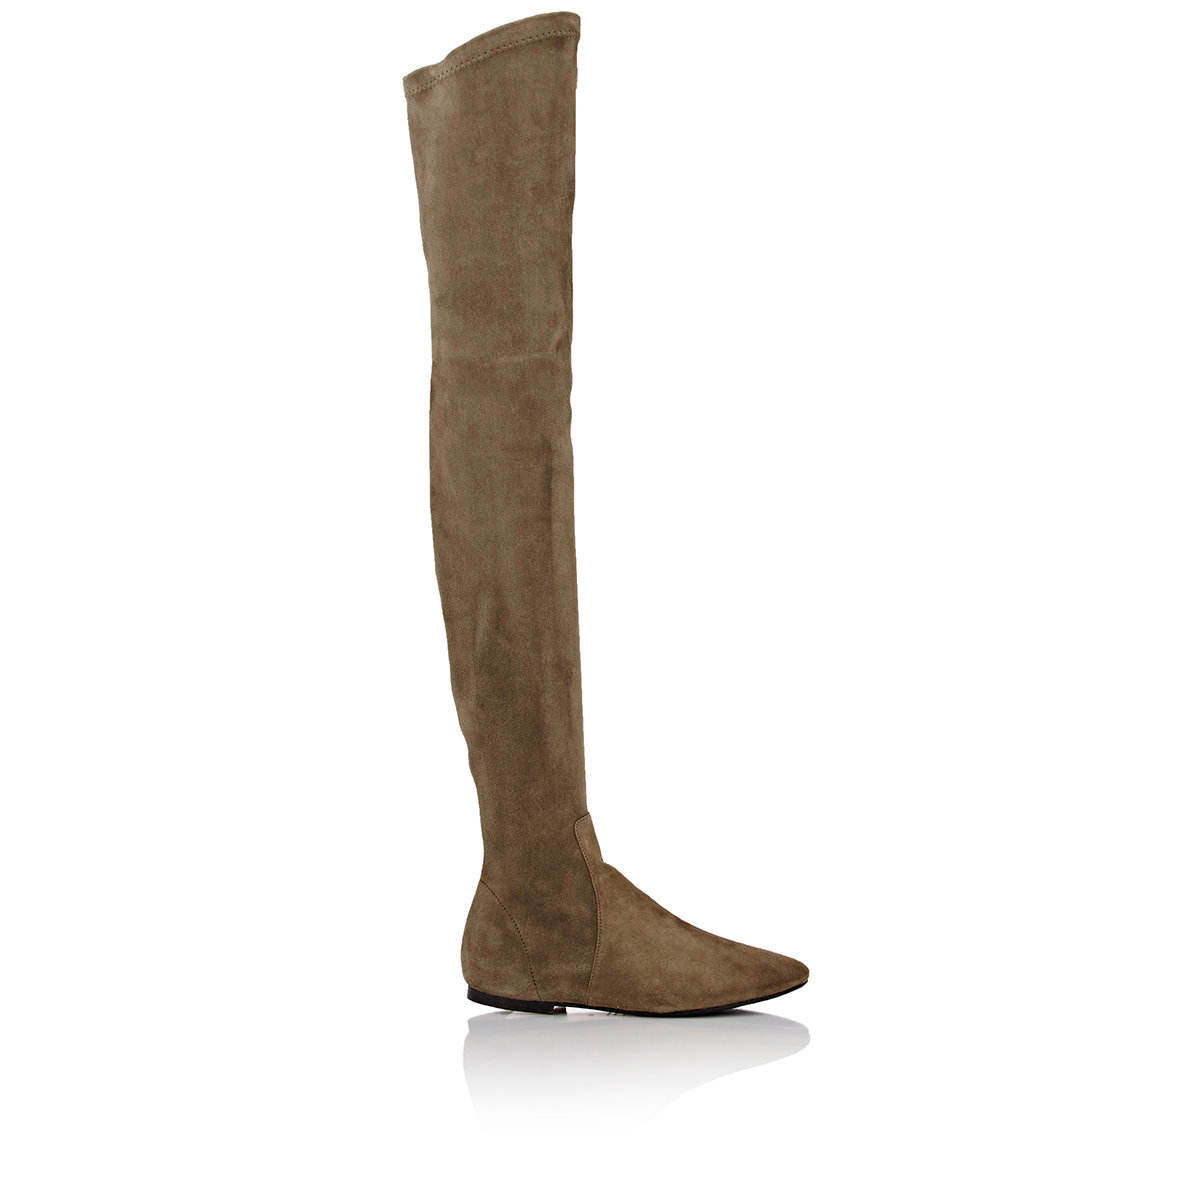 9def9f9baaf Lyst - Étoile Isabel Marant Women s Brenna Over-the-knee Boots in ...